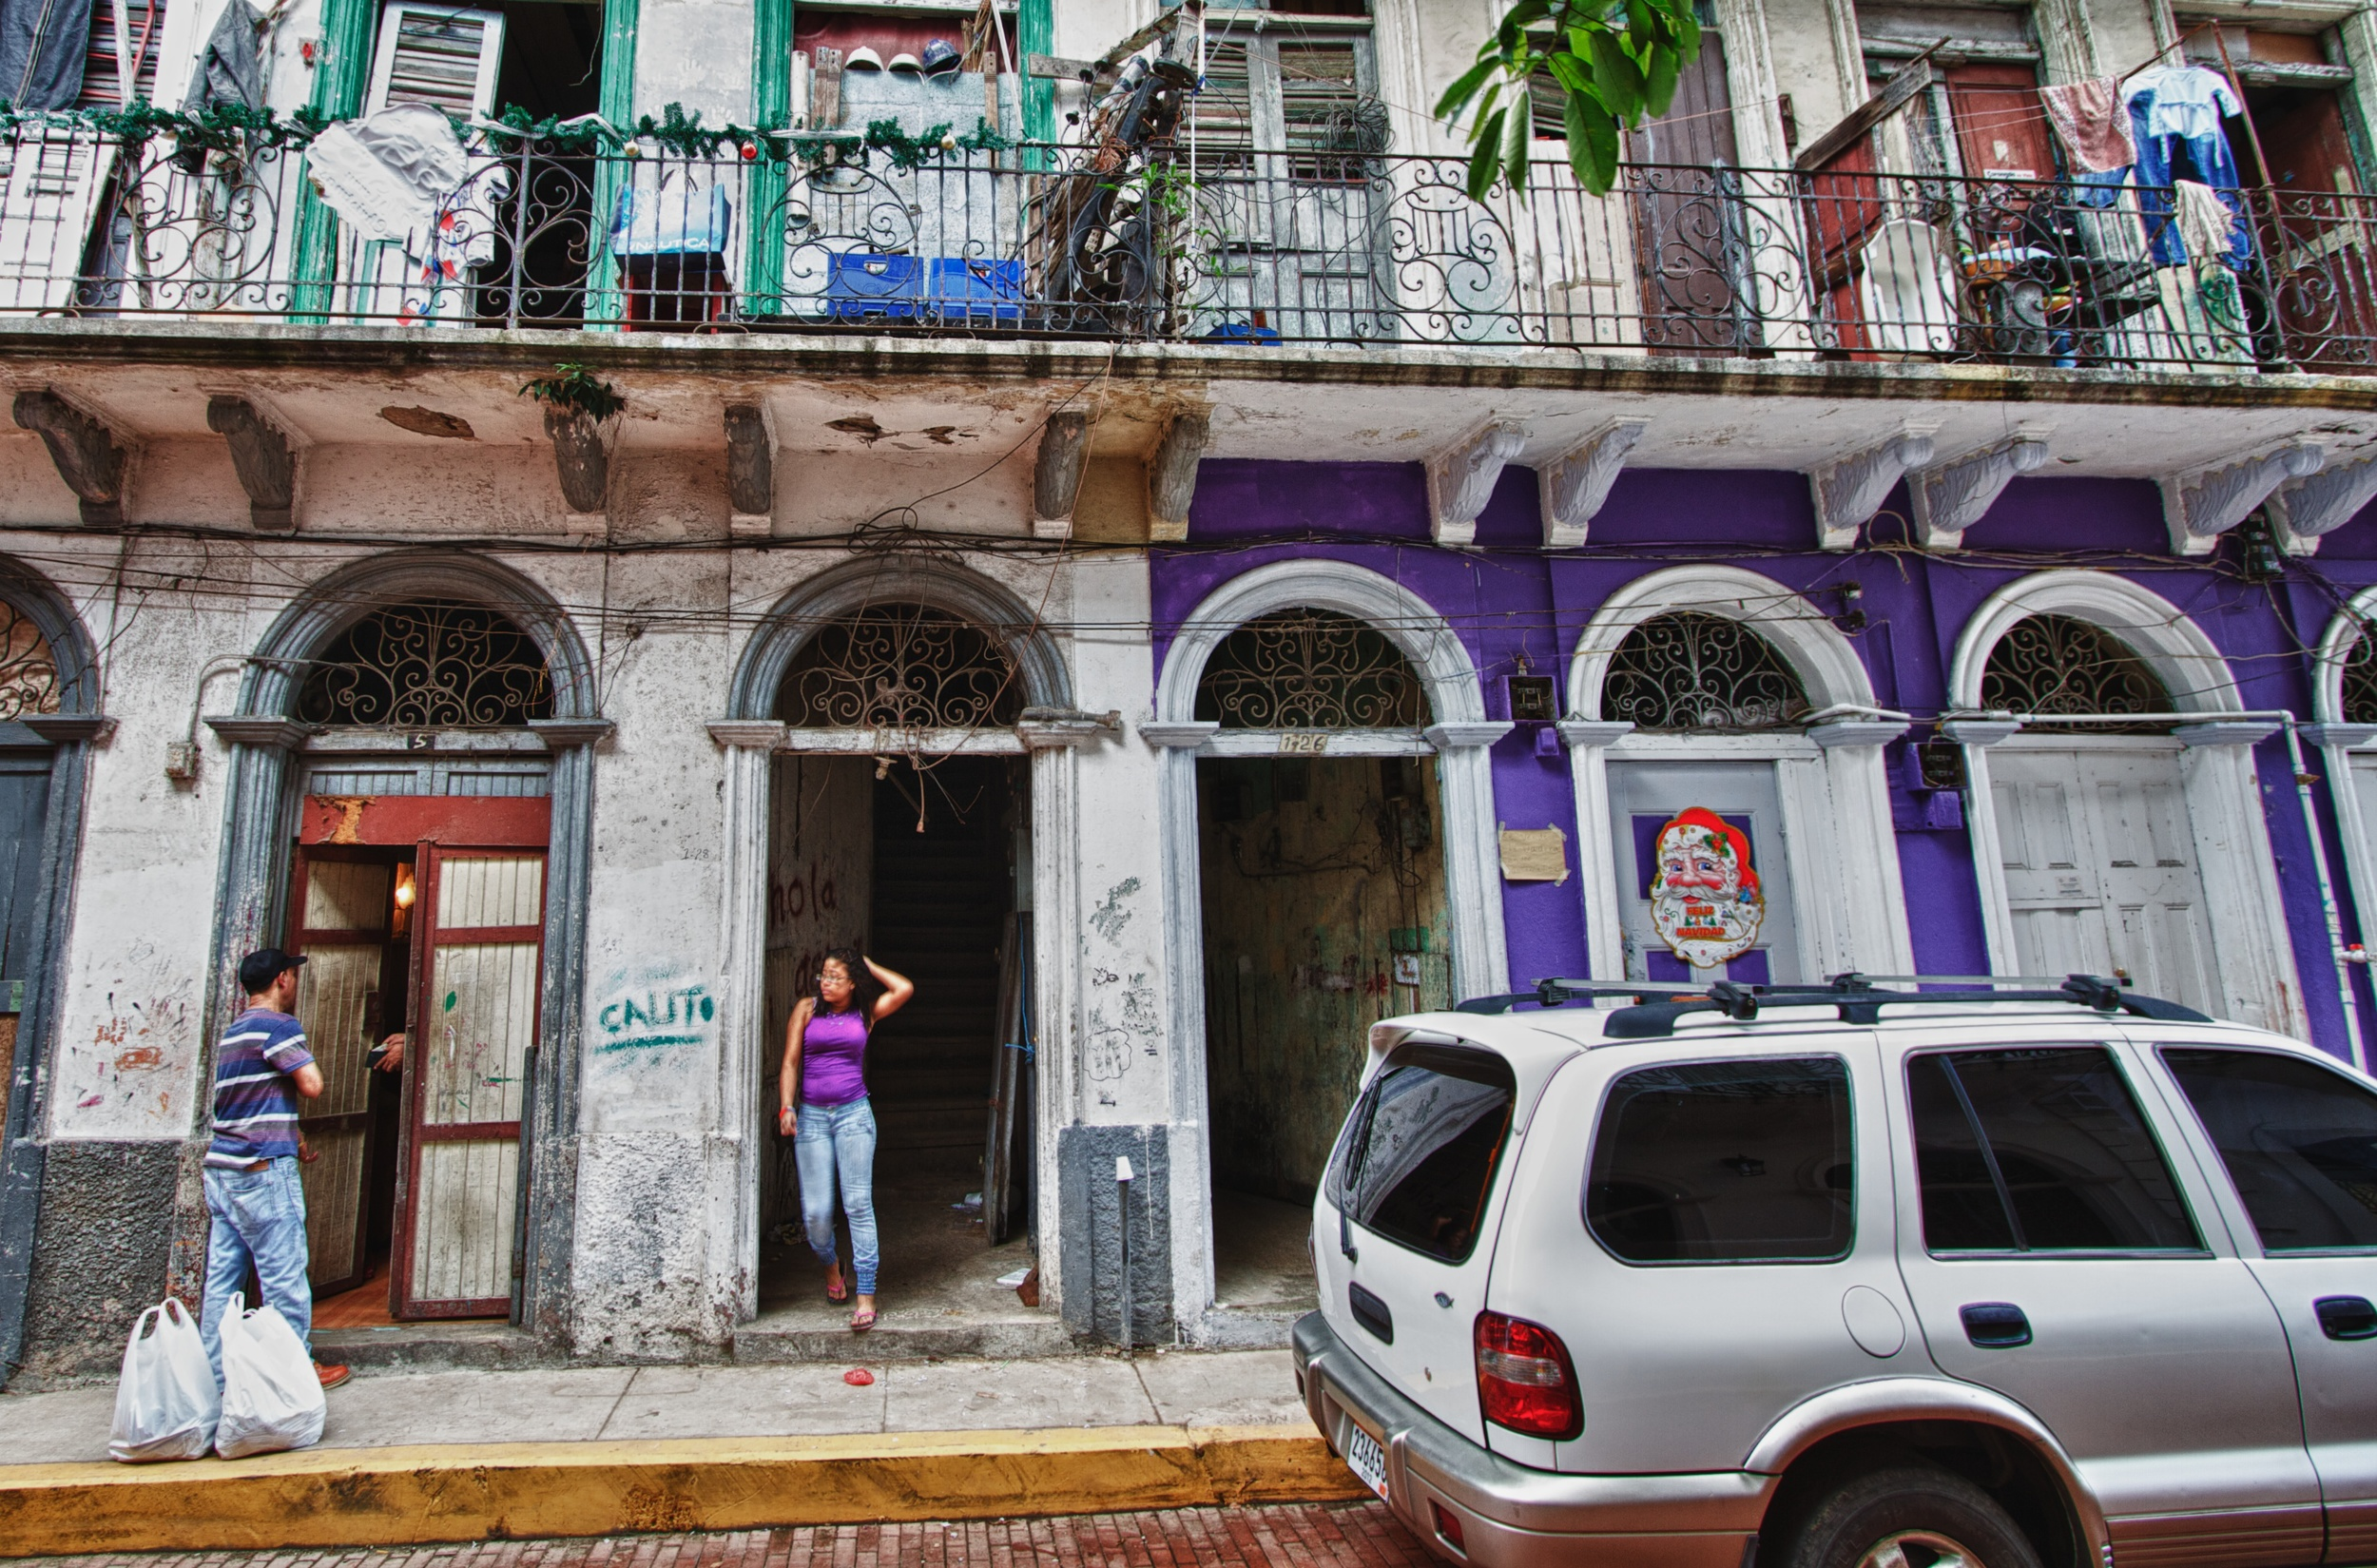 2012-12-31 at 10-15-00 Casco Viejo, Lunch, Panama, Purple, Salesman, Tenement, Doorway.jpg